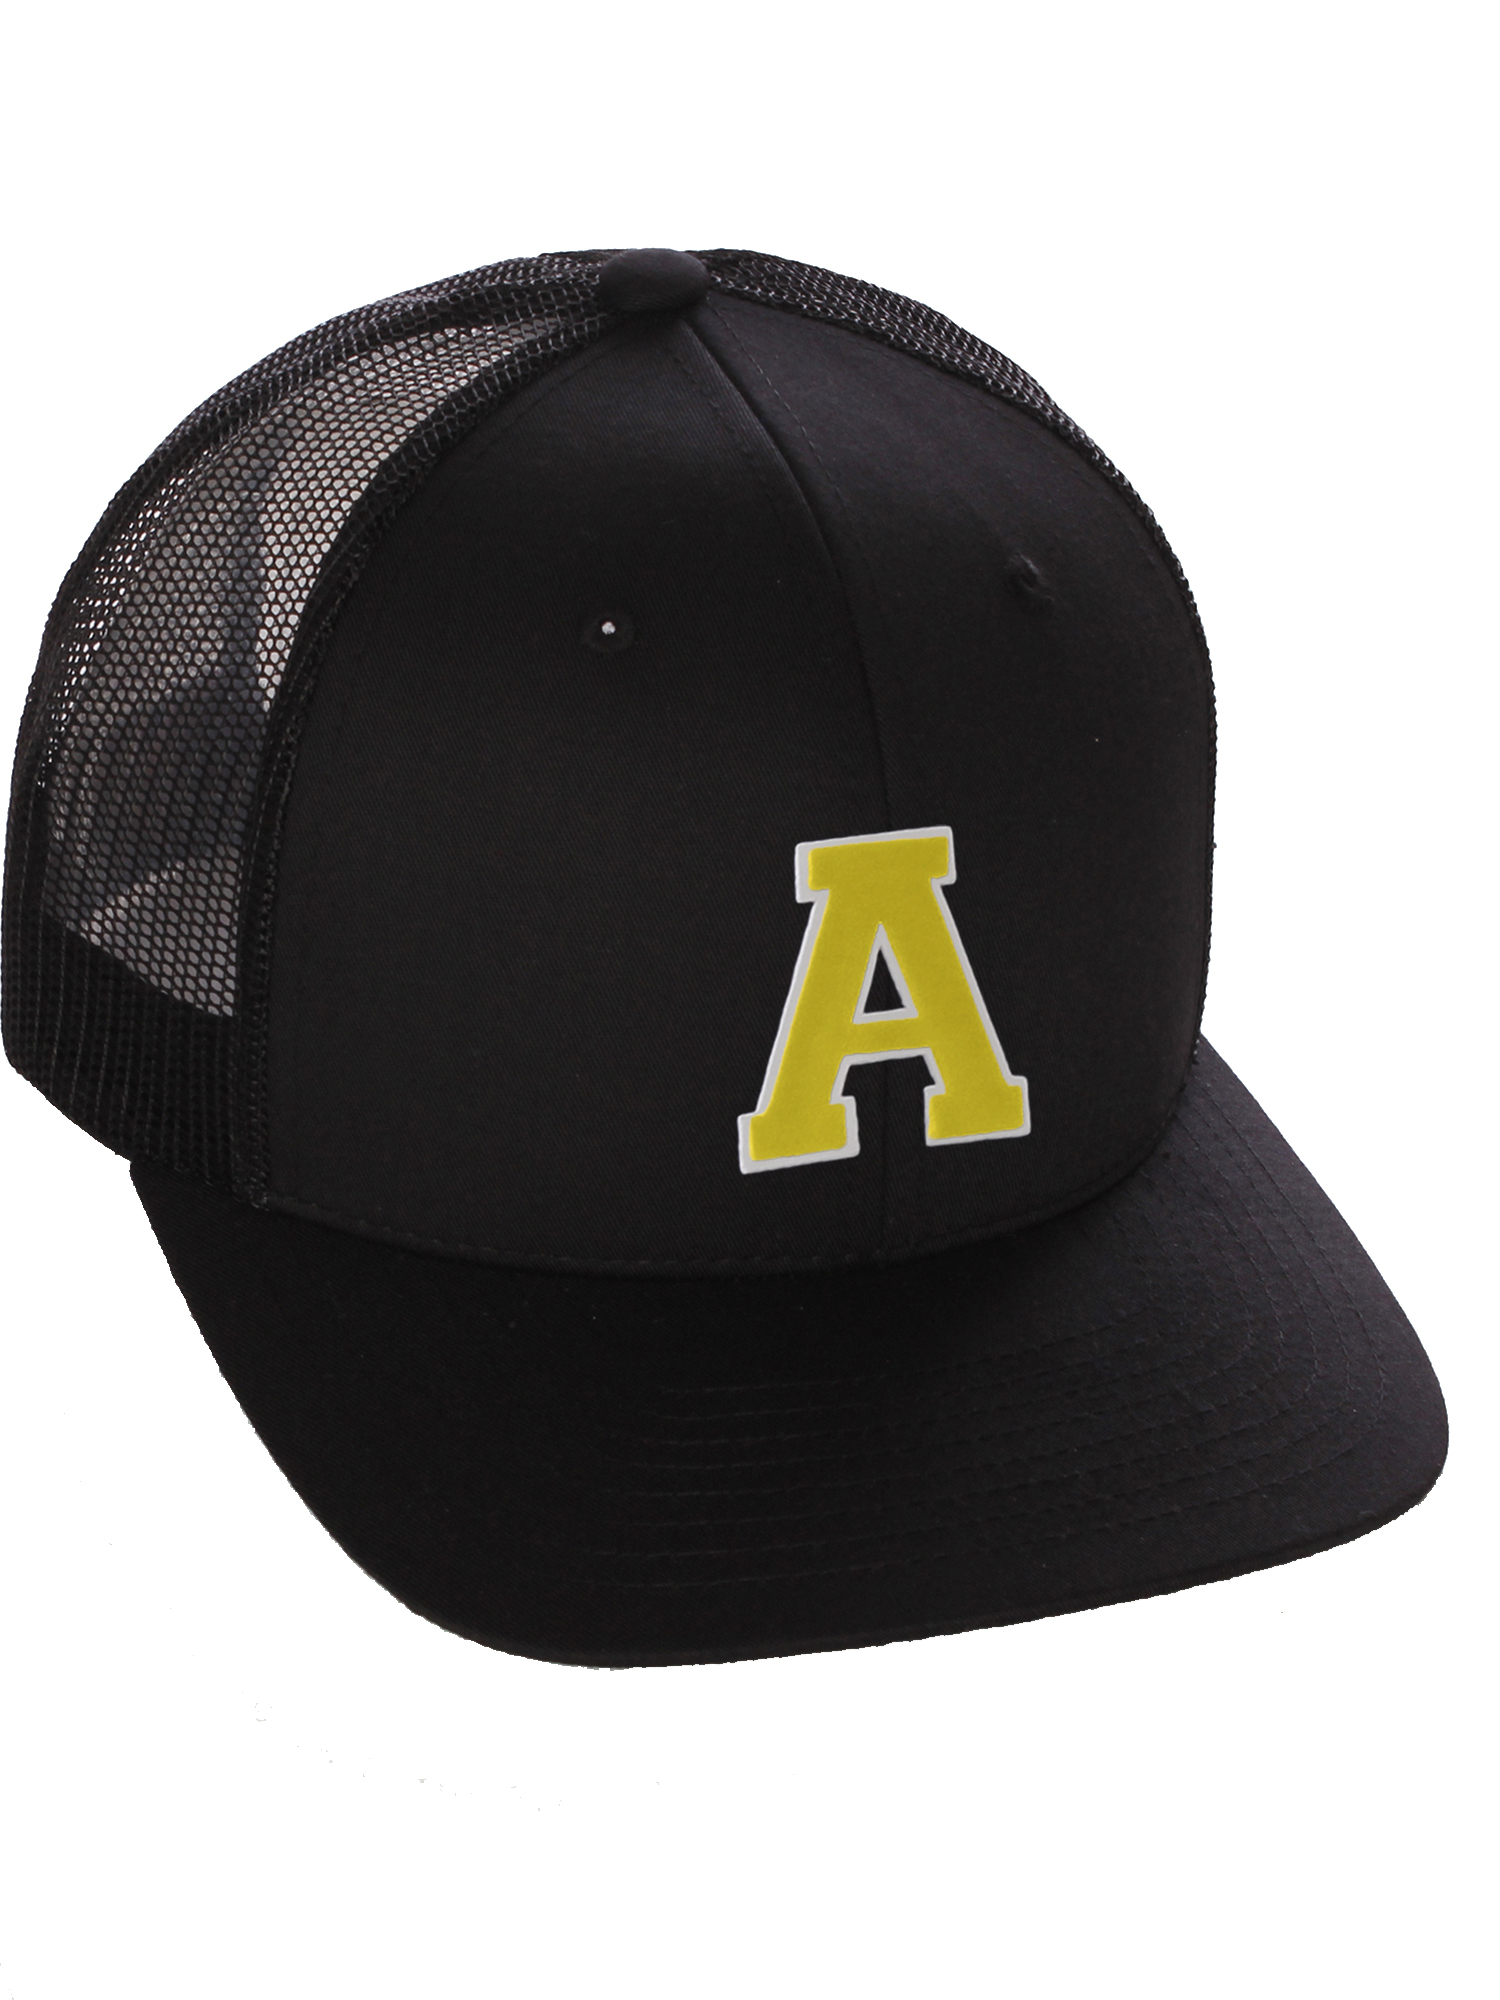 Pilot Gold Embroidered Acrylic Adjustable Structured Baseball Hat One Size